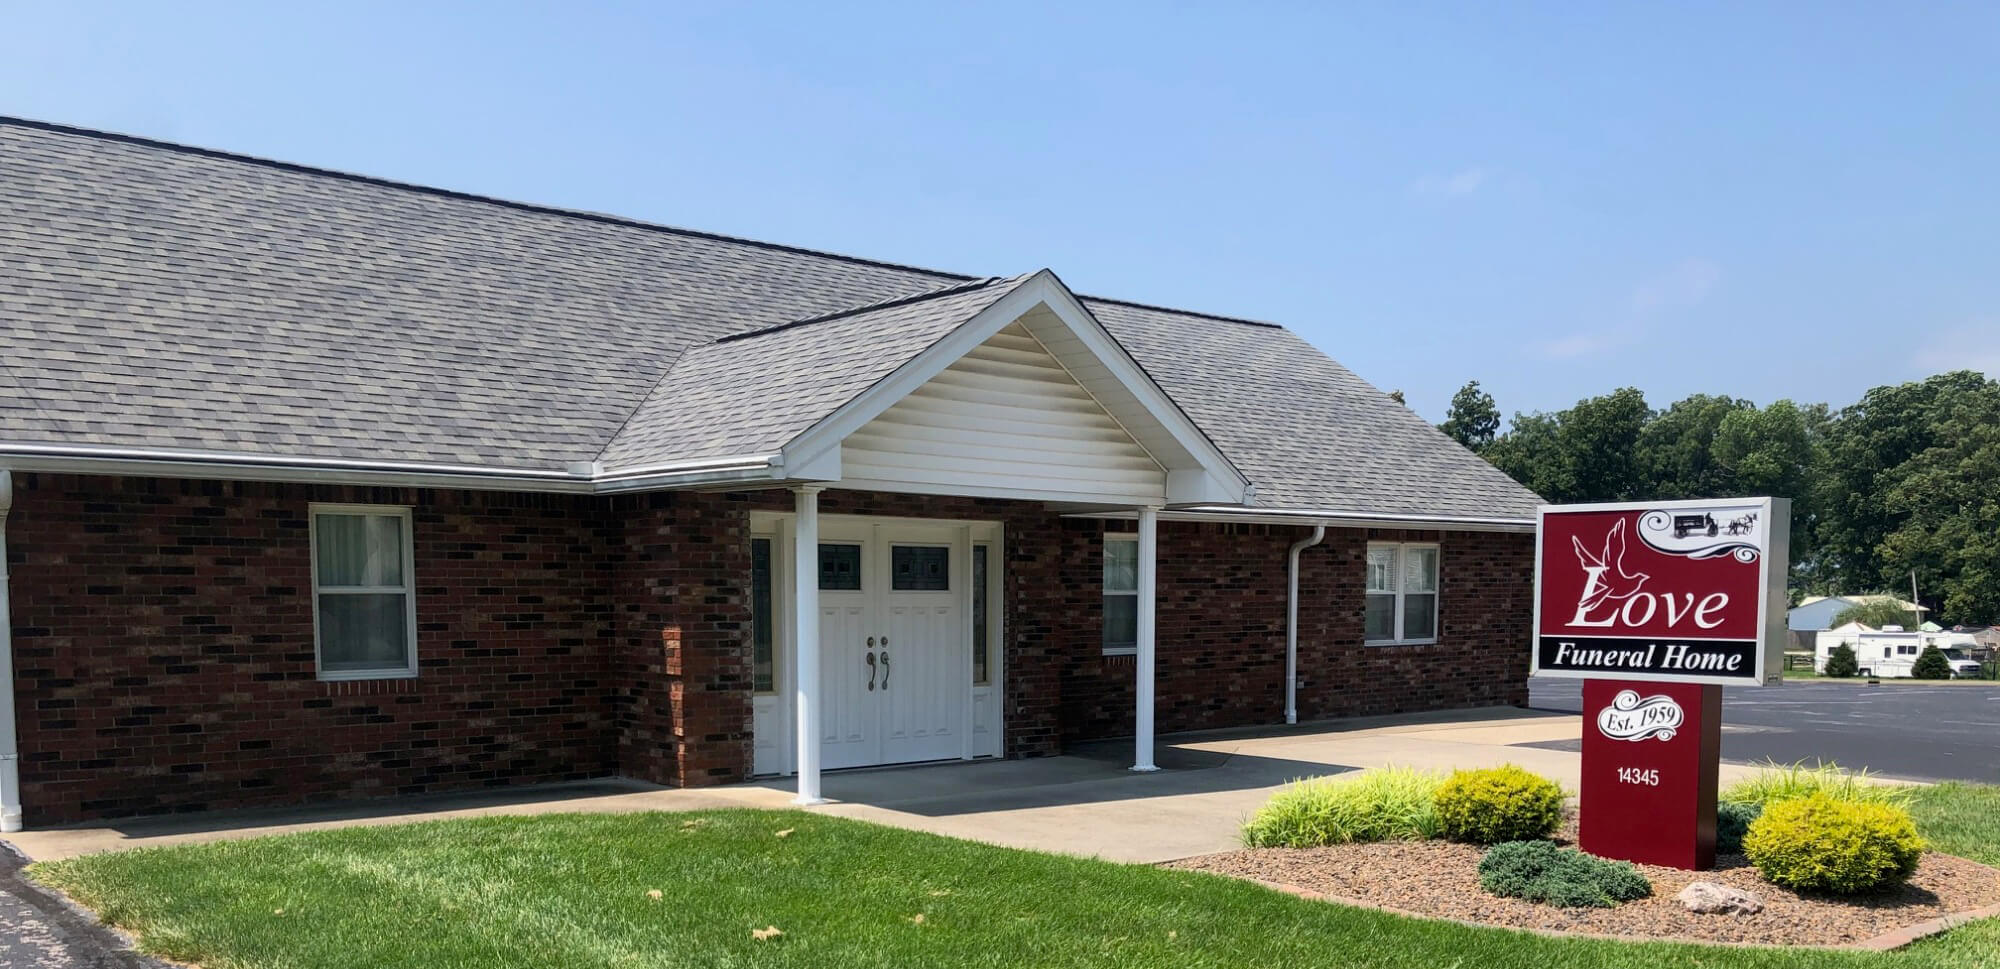 Love Funeral Home in Palmyra, IN